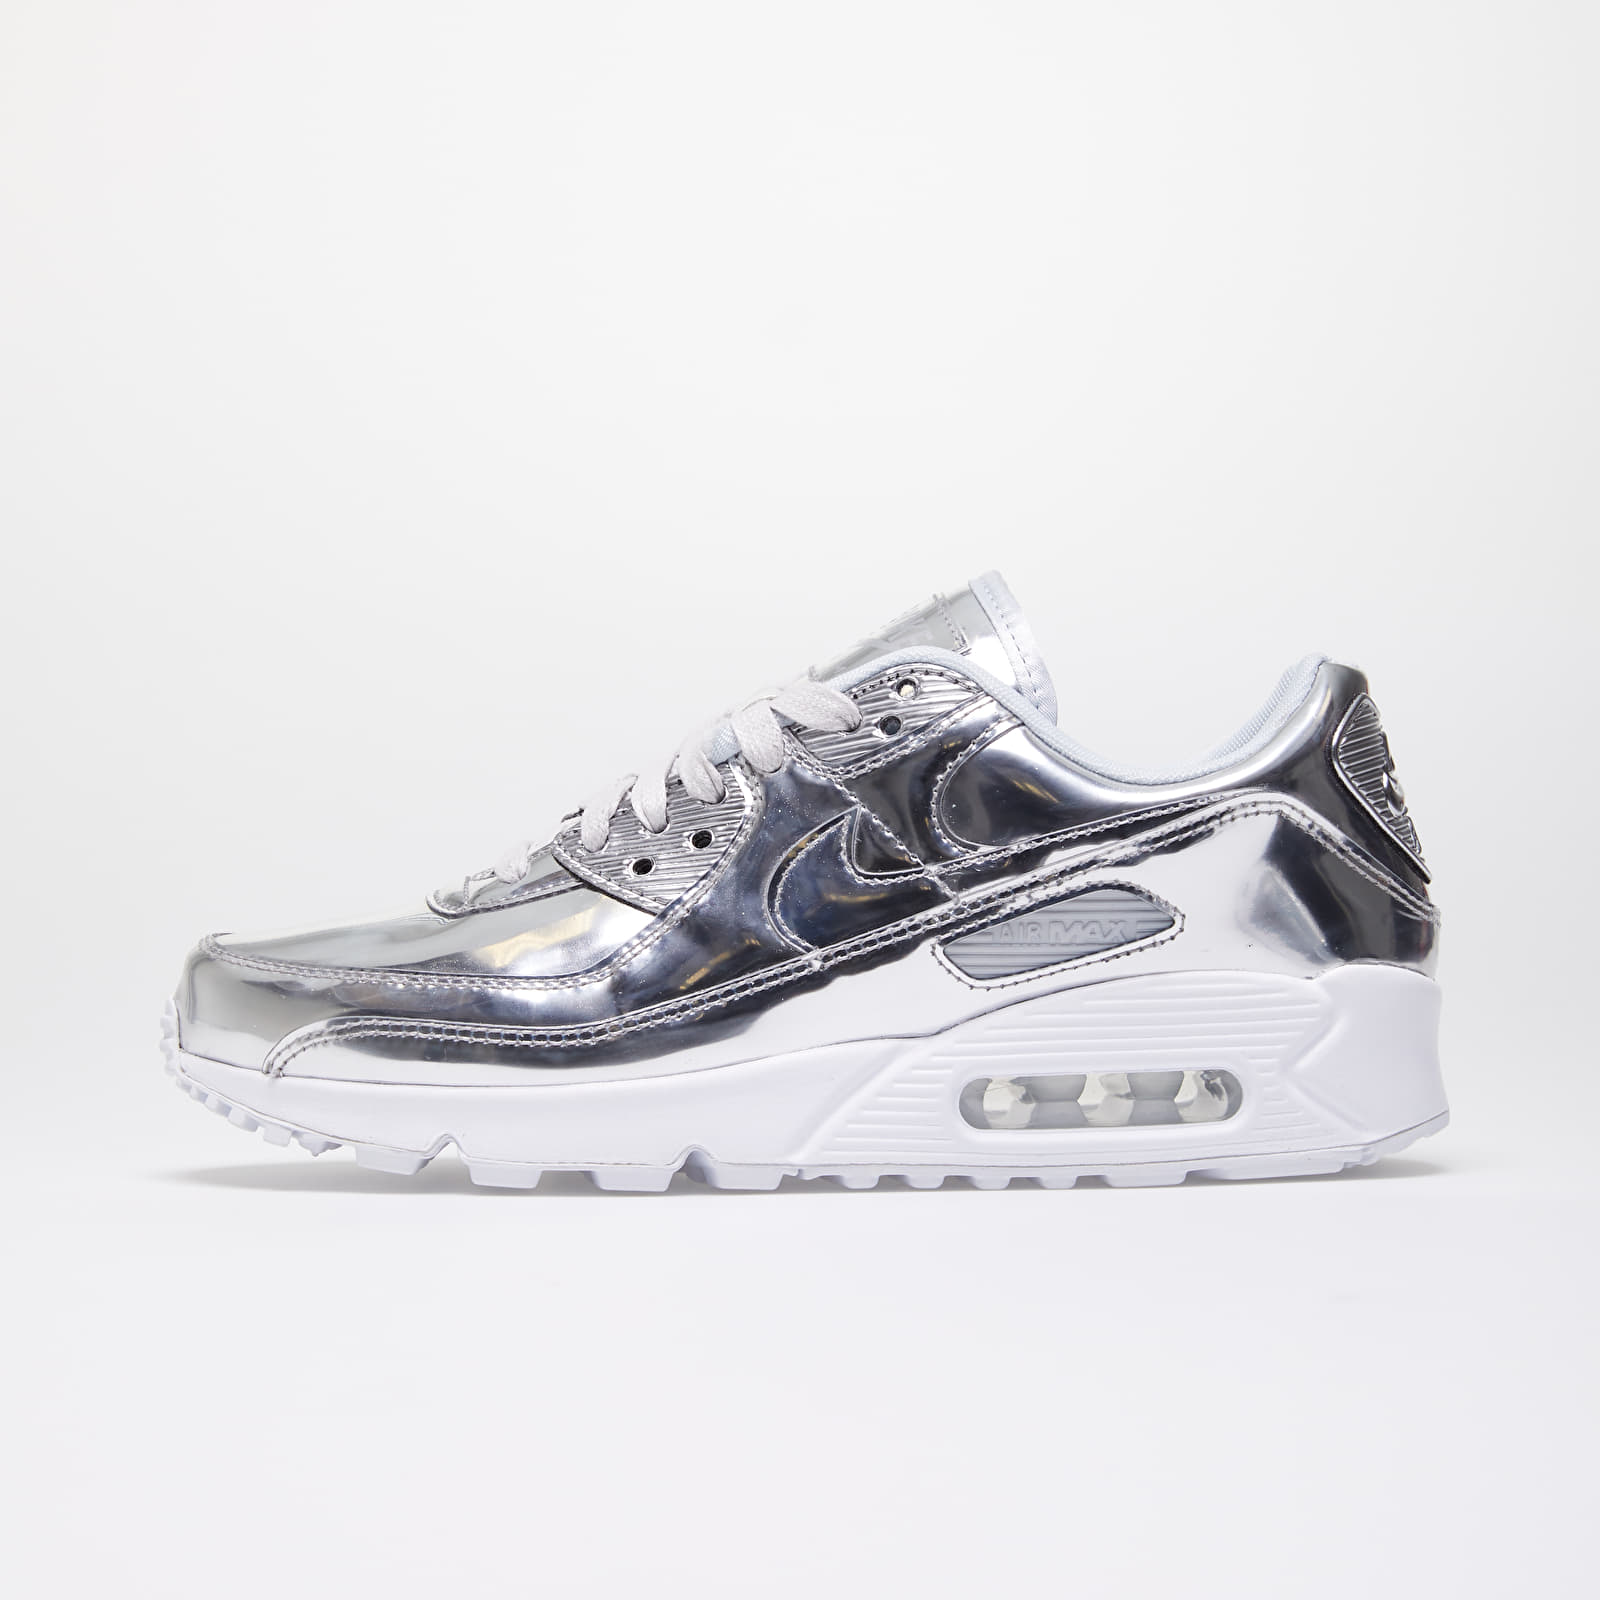 Women's shoes Nike W Air Max 90 SP Chrome/ Chrome-Pure Platinum-White